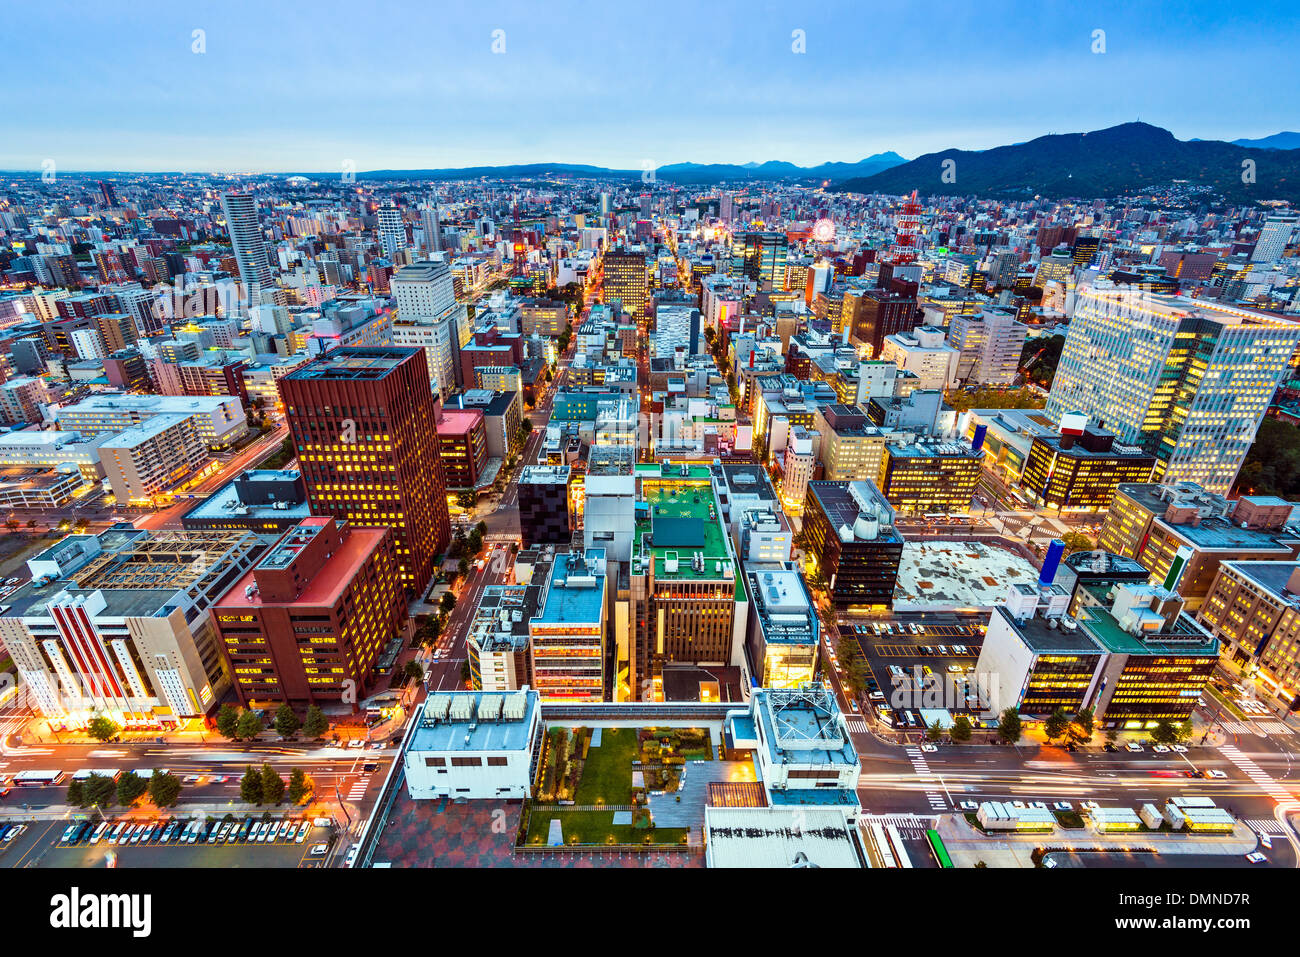 Sapporo, Japan cityscape at the Central Ward. - Stock Image